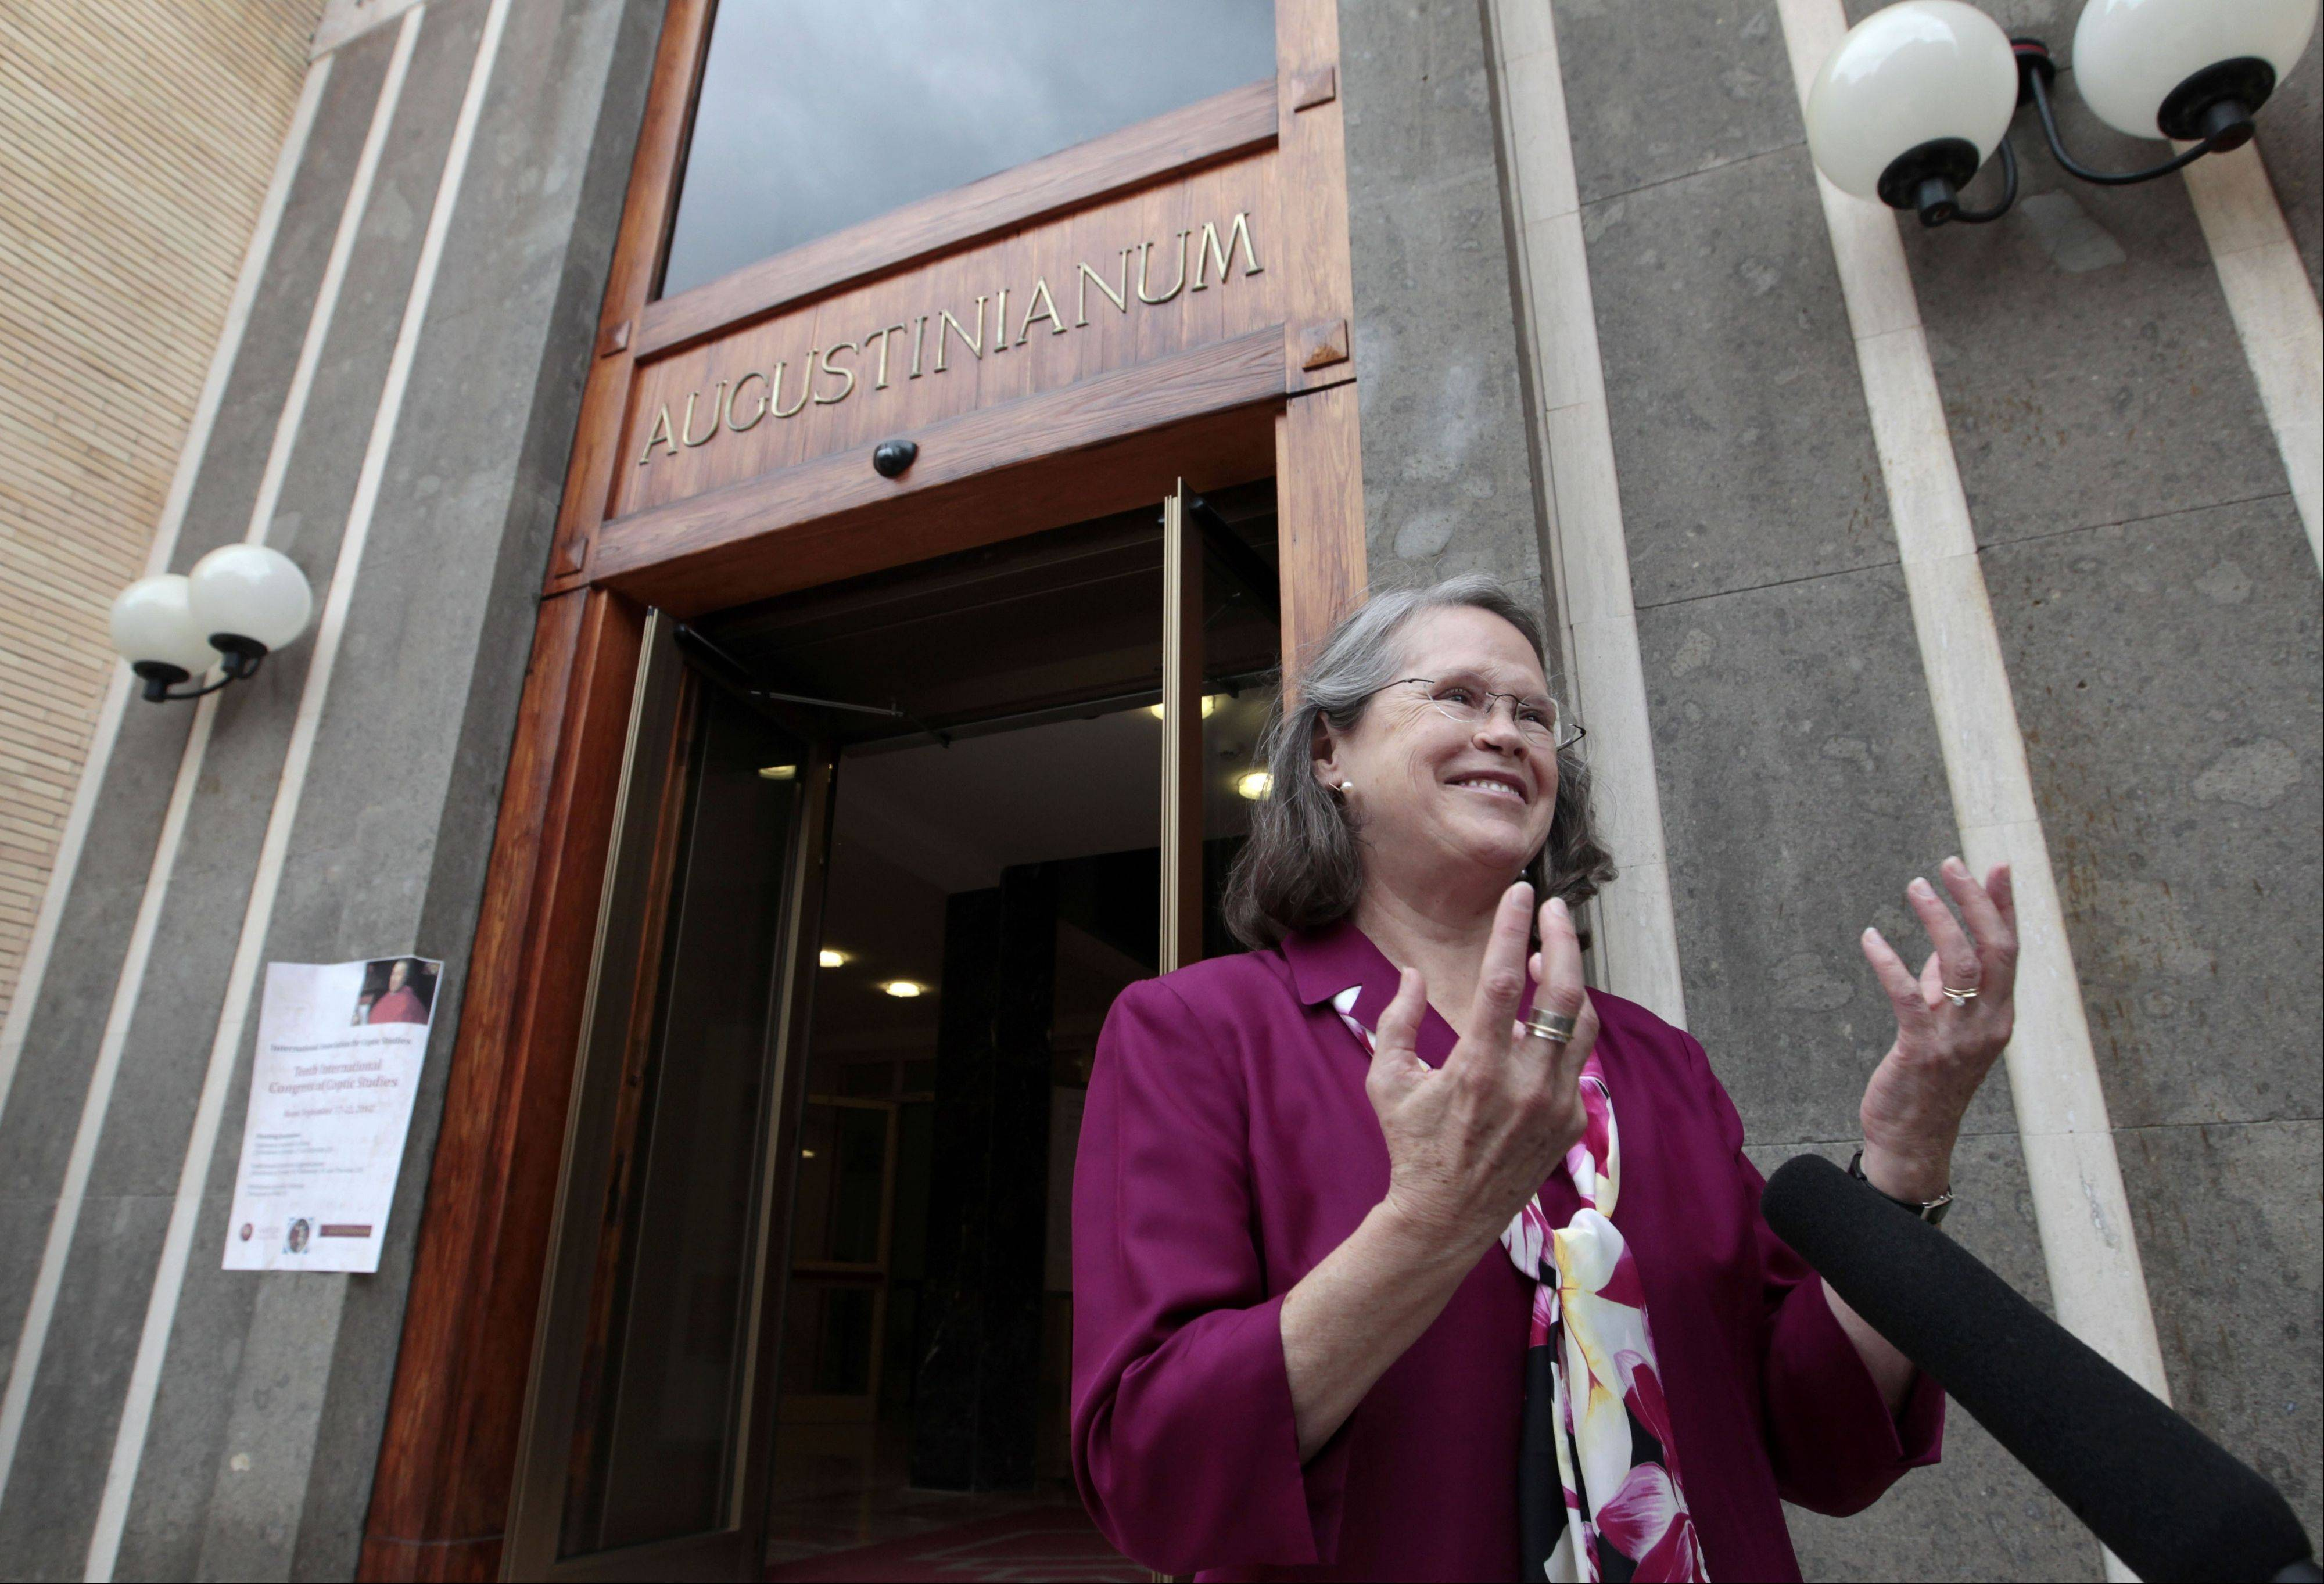 Karen L. King, a professor at Harvard Divinity School, speaks to the media Wednesday outside the Augustinianum institute, where an international congress on Coptic studies was being held in Rome.